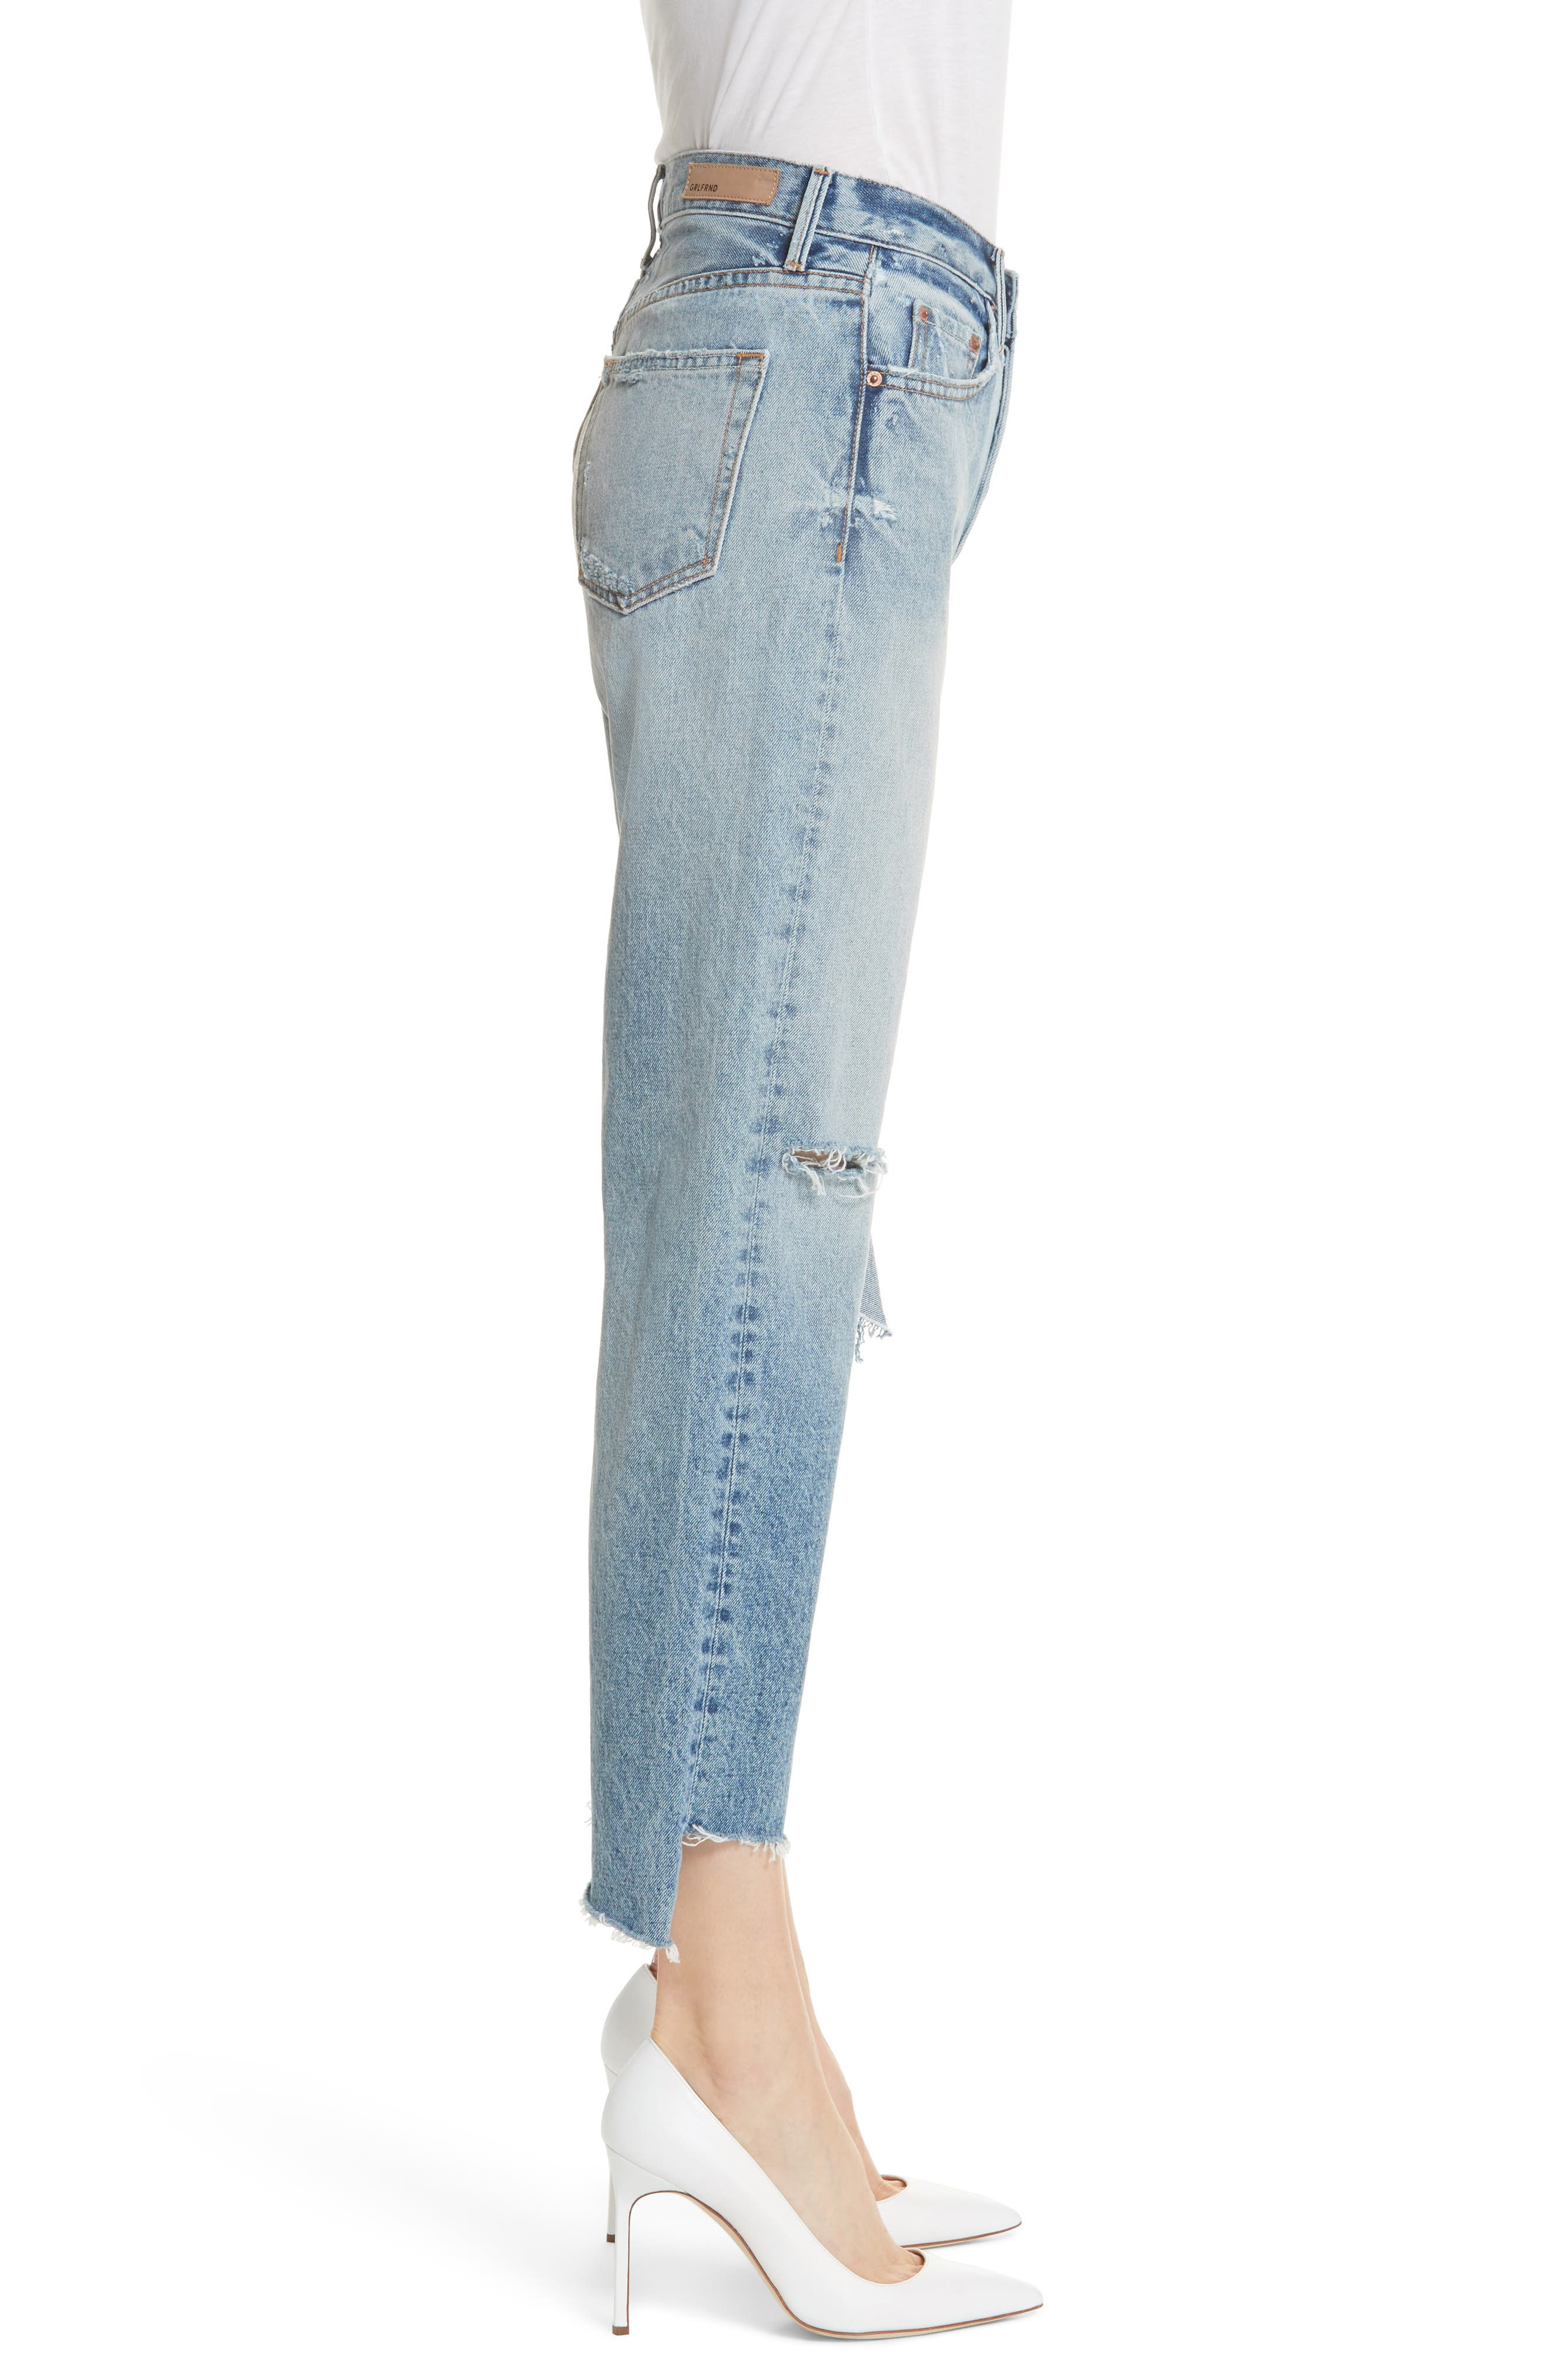 Helena Ripped Rigid High Waist Straight Jeans,                             Alternate thumbnail 4, color,                             All Cut Up